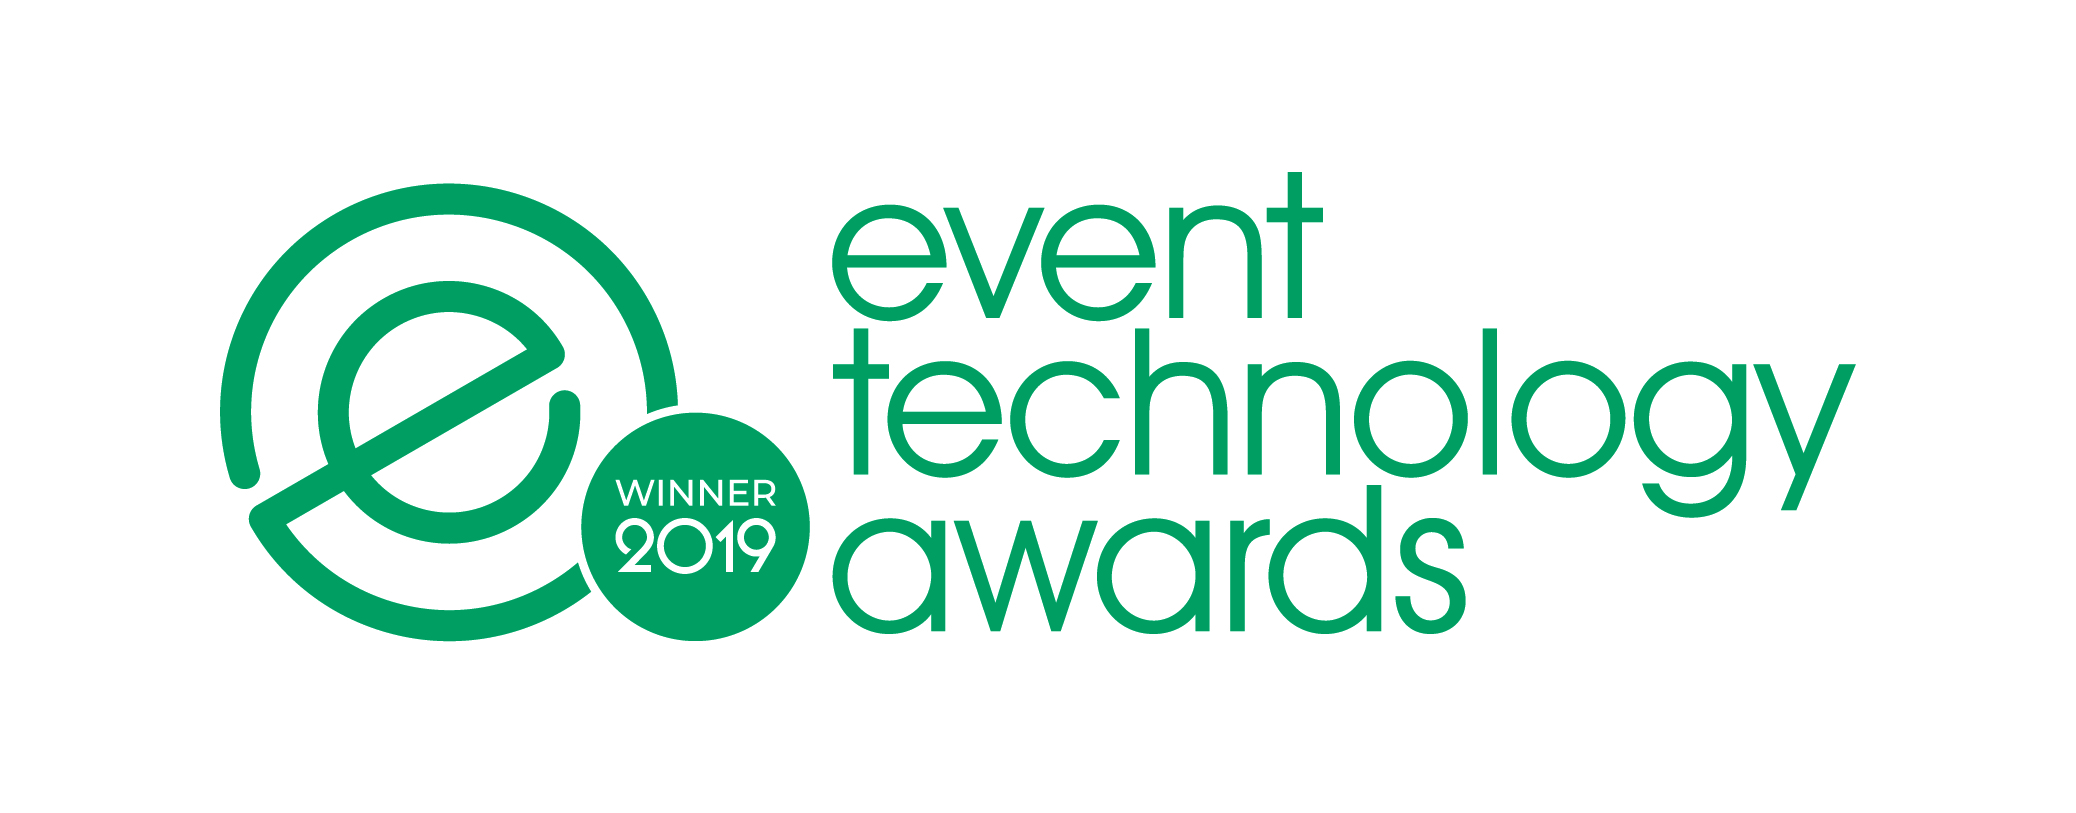 event technology award winner logo